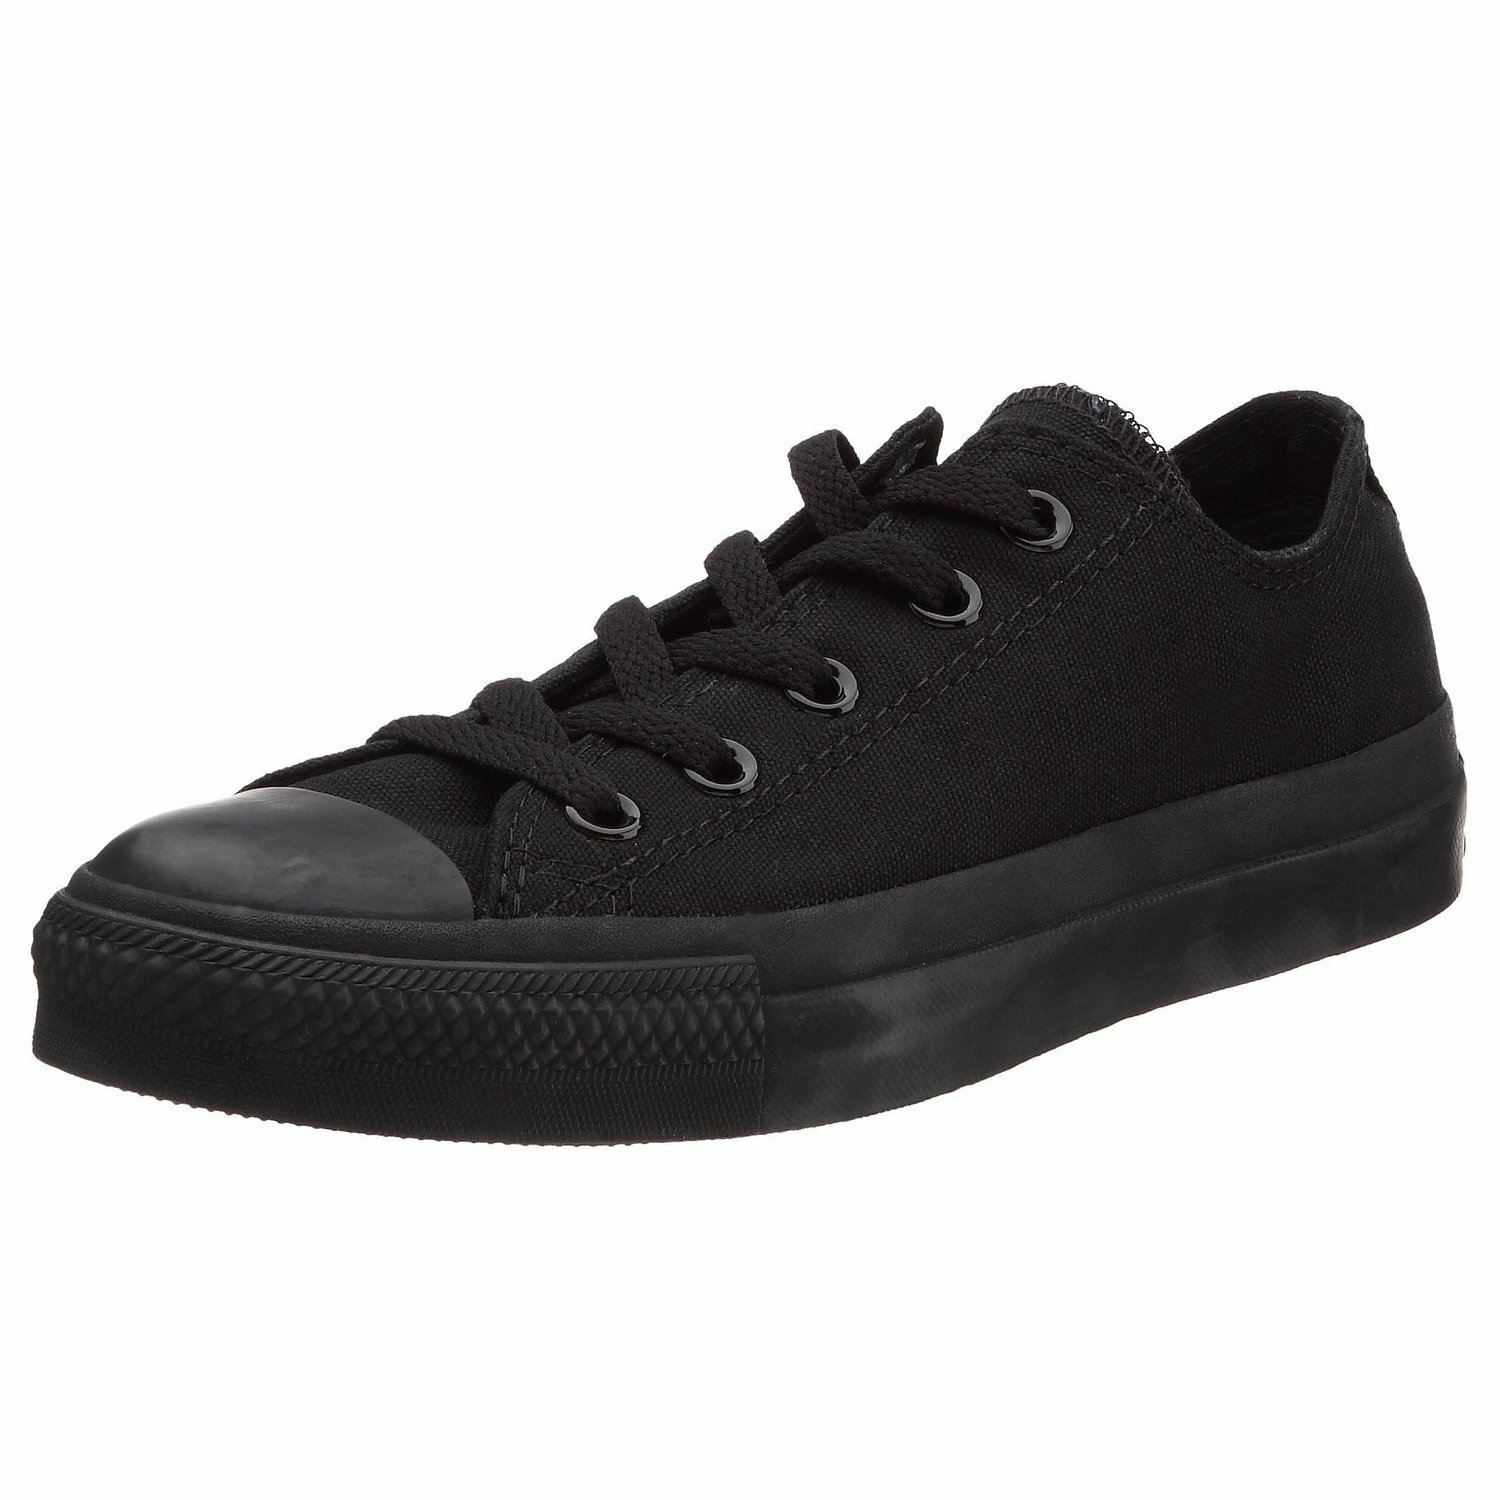 Converse Chuck Taylor All Star Black Mono Ox Lo Unisex Trainers Shoes